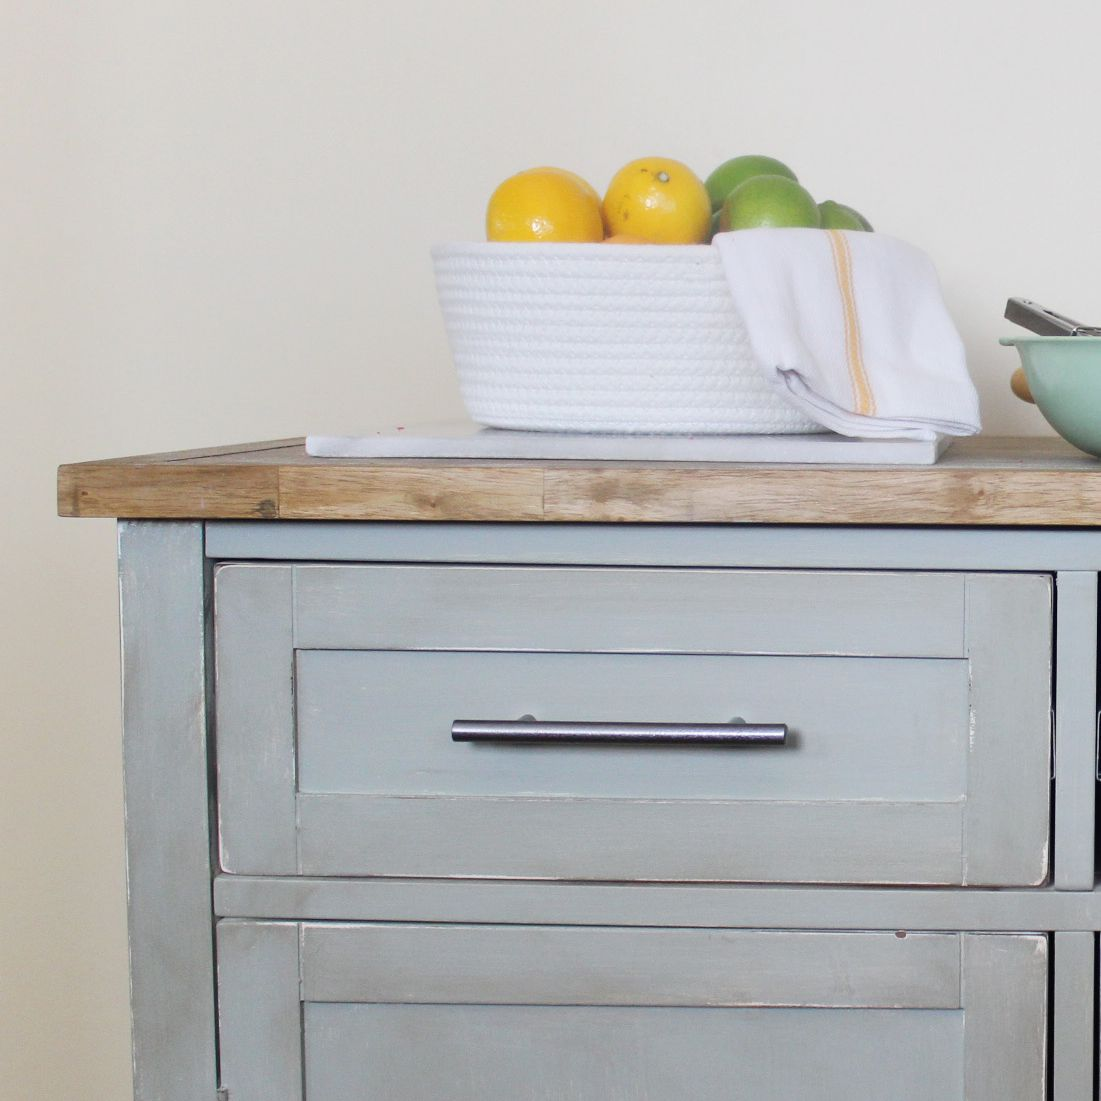 how to antique wood using paint to make it look old